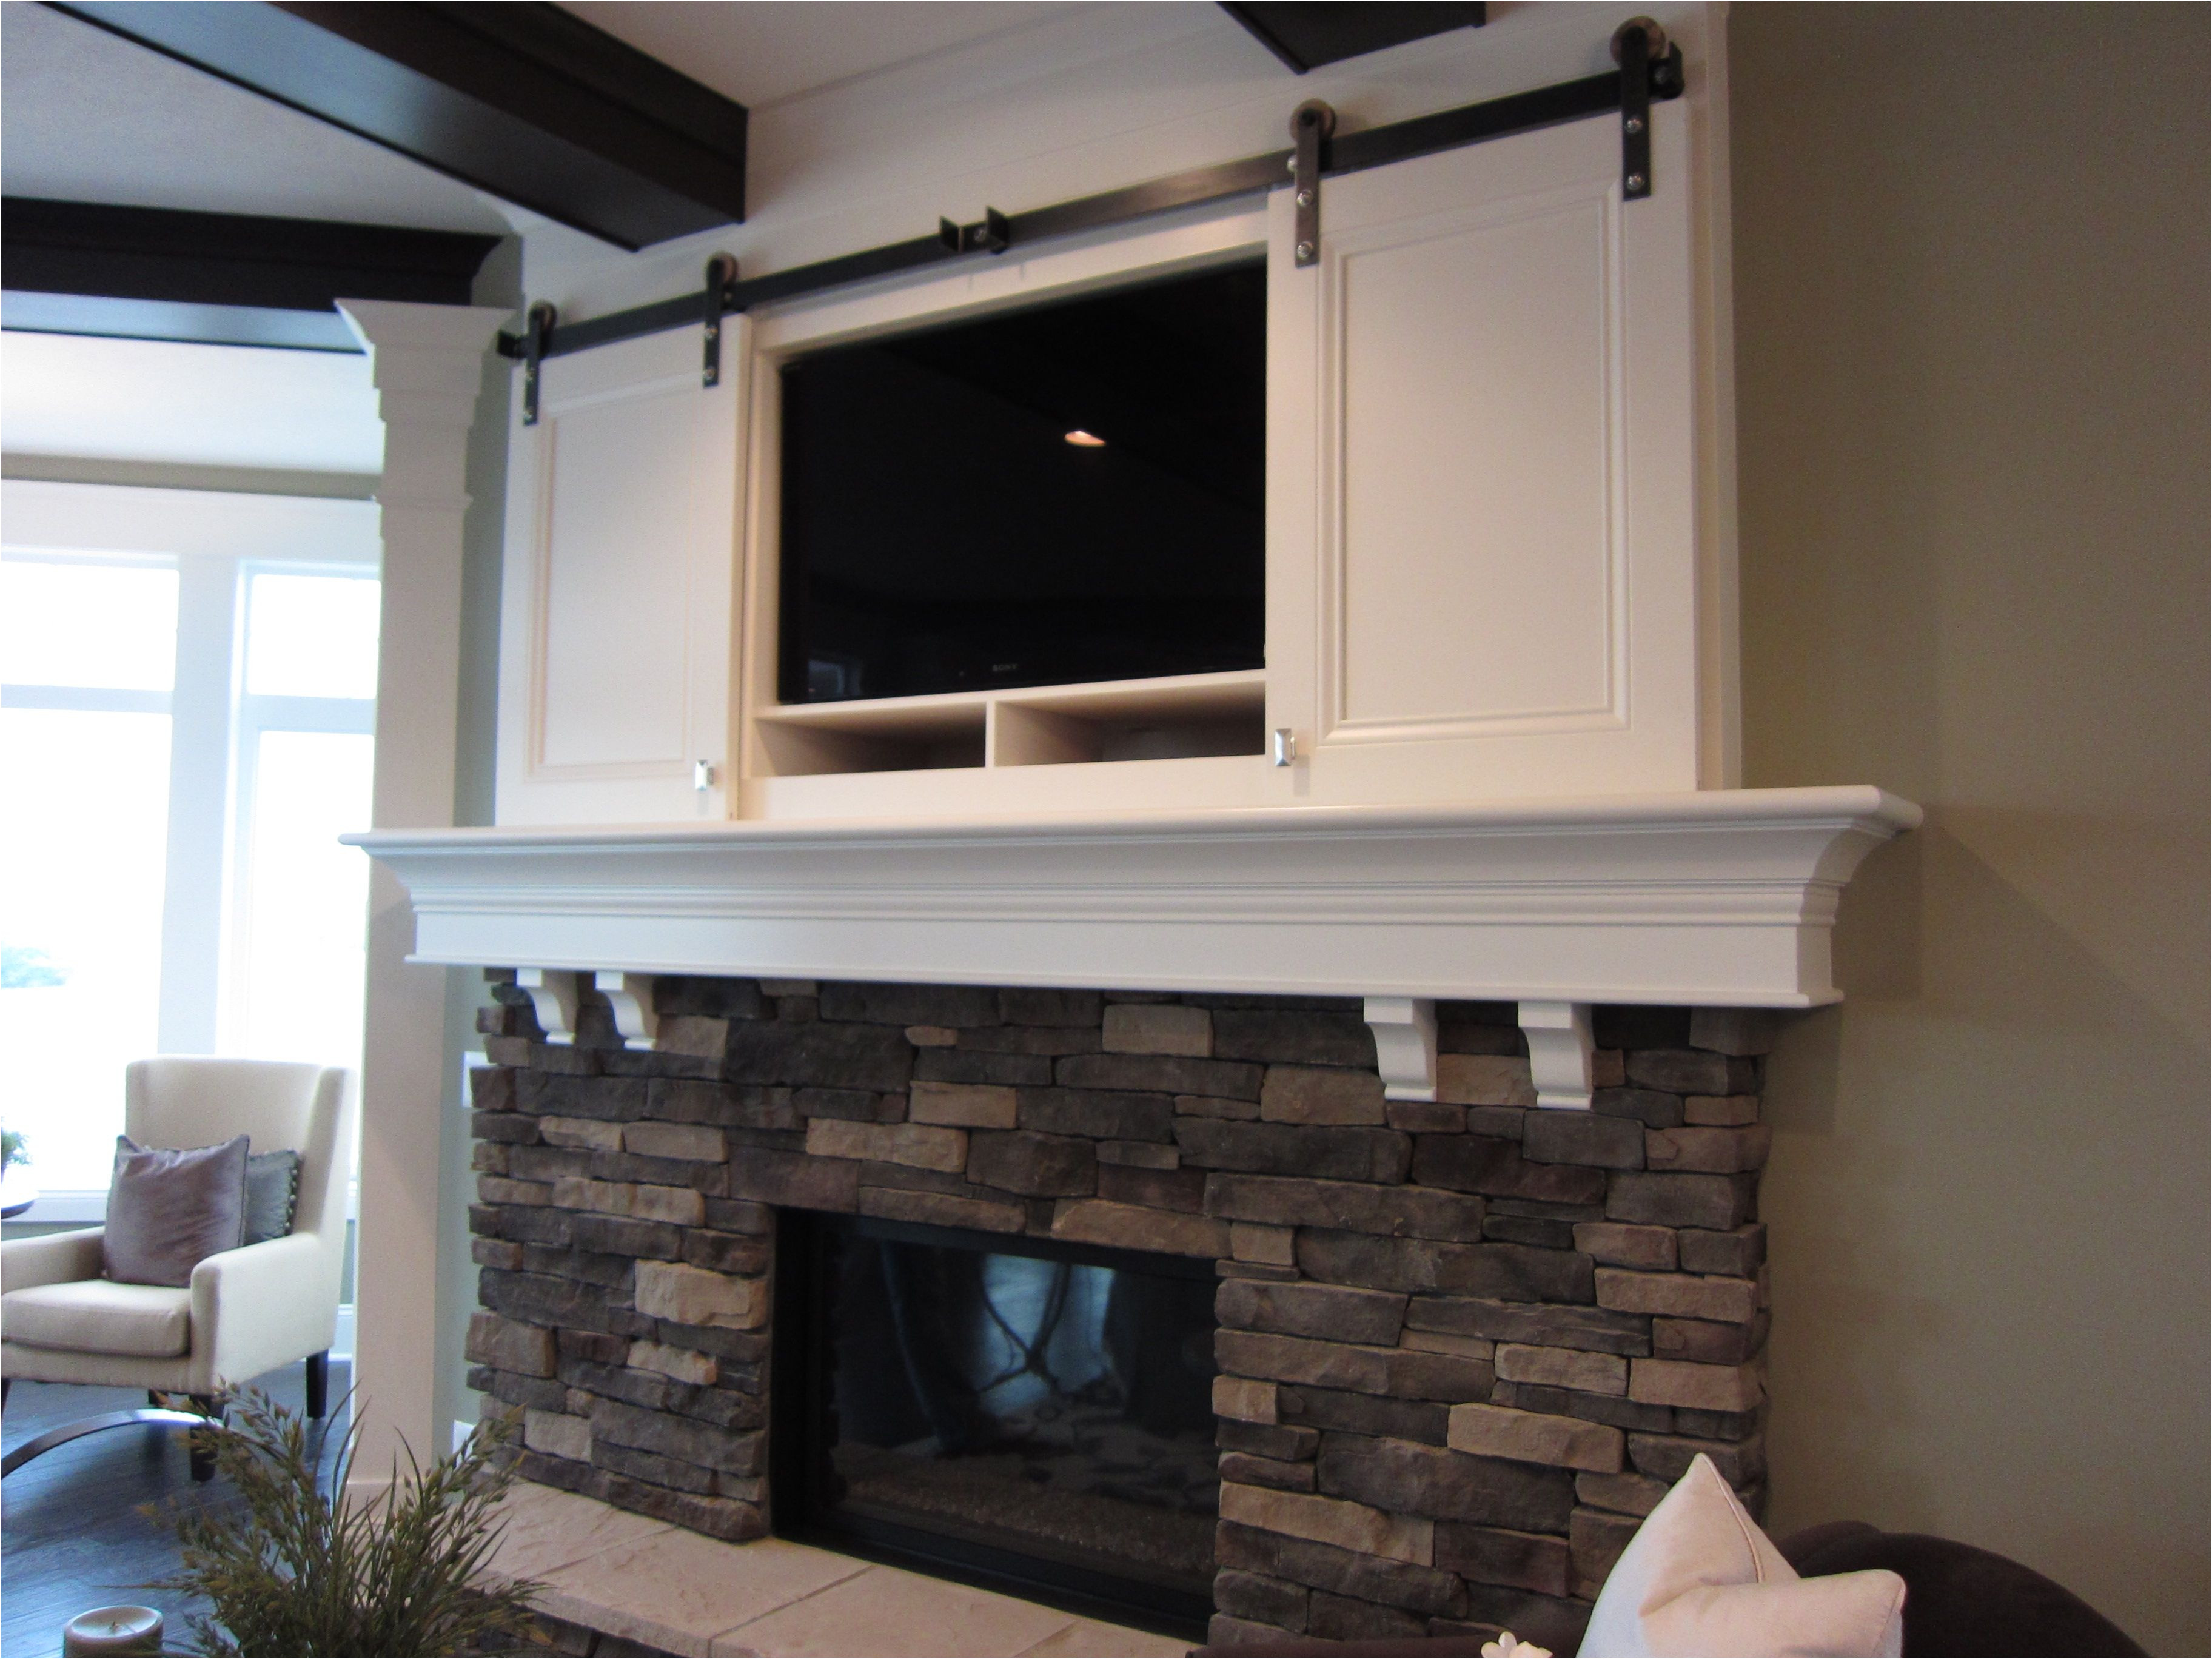 Fireplace Remodel before and after Elegant Fireplace Tv Mantel Ideas Best 25 Tv Above Fireplace Ideas